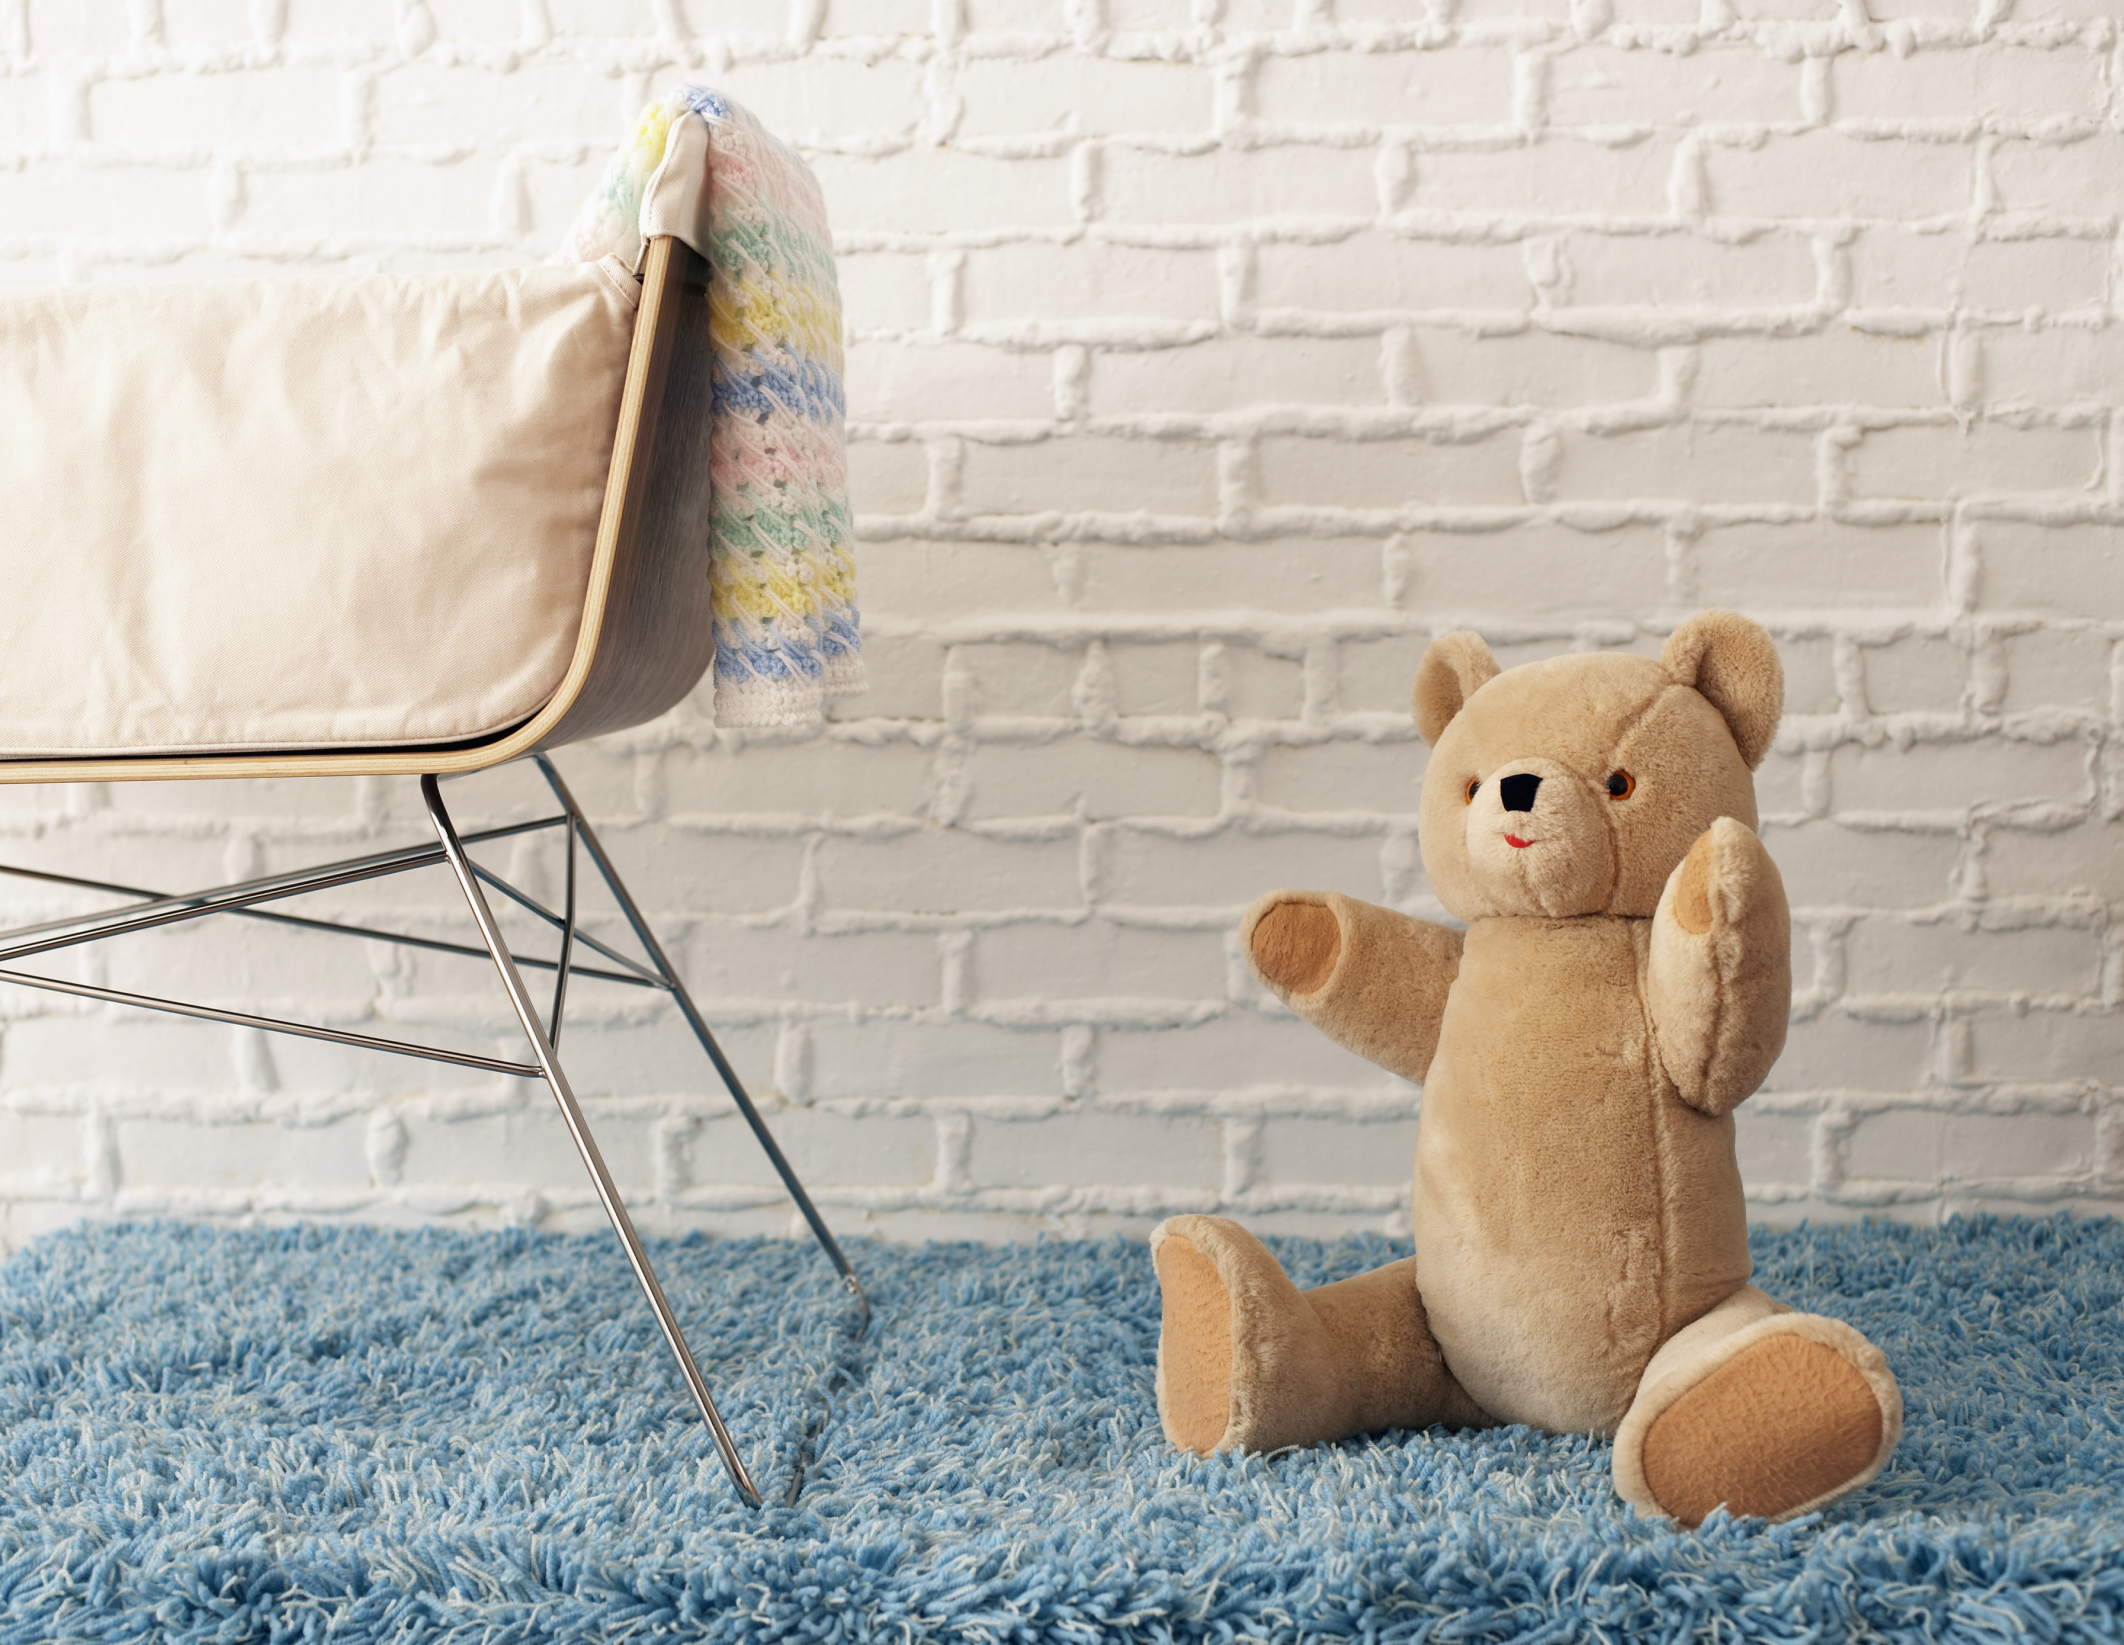 10 Ways to Baby-Proof Your Home